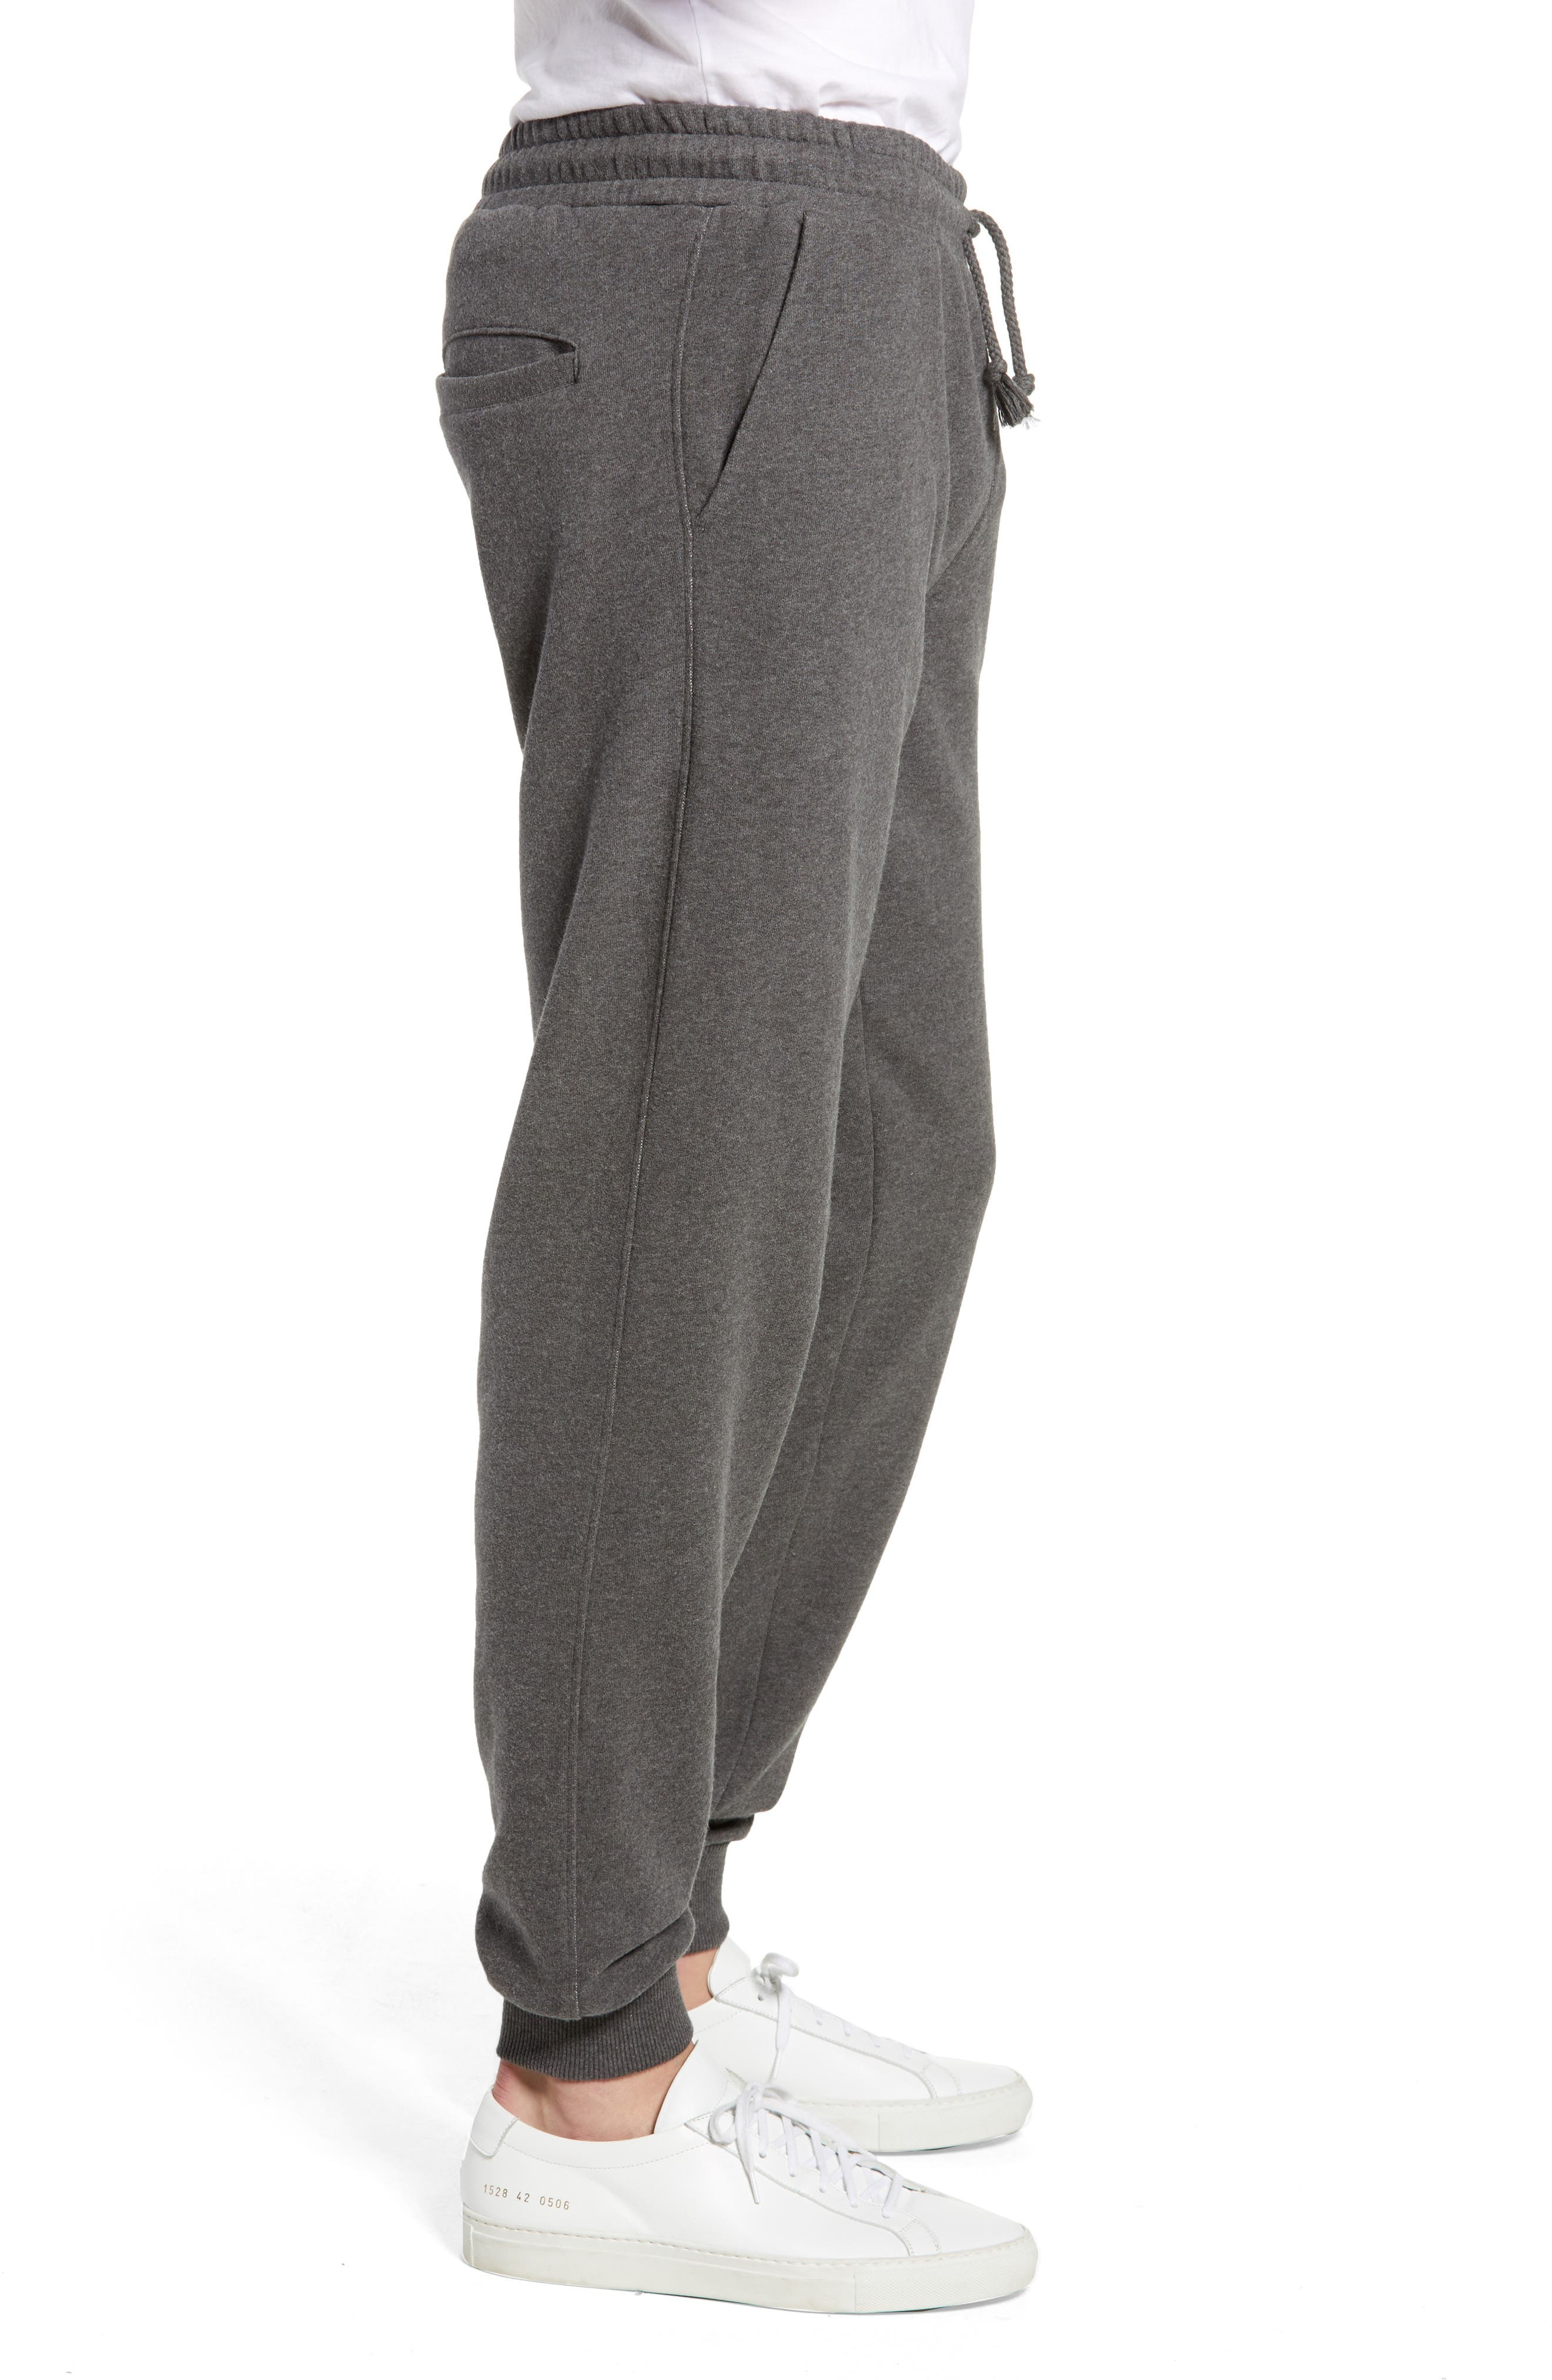 KnowledgeCotton Mélange Sweatpants,                             Alternate thumbnail 3, color,                             GREY MELANGE